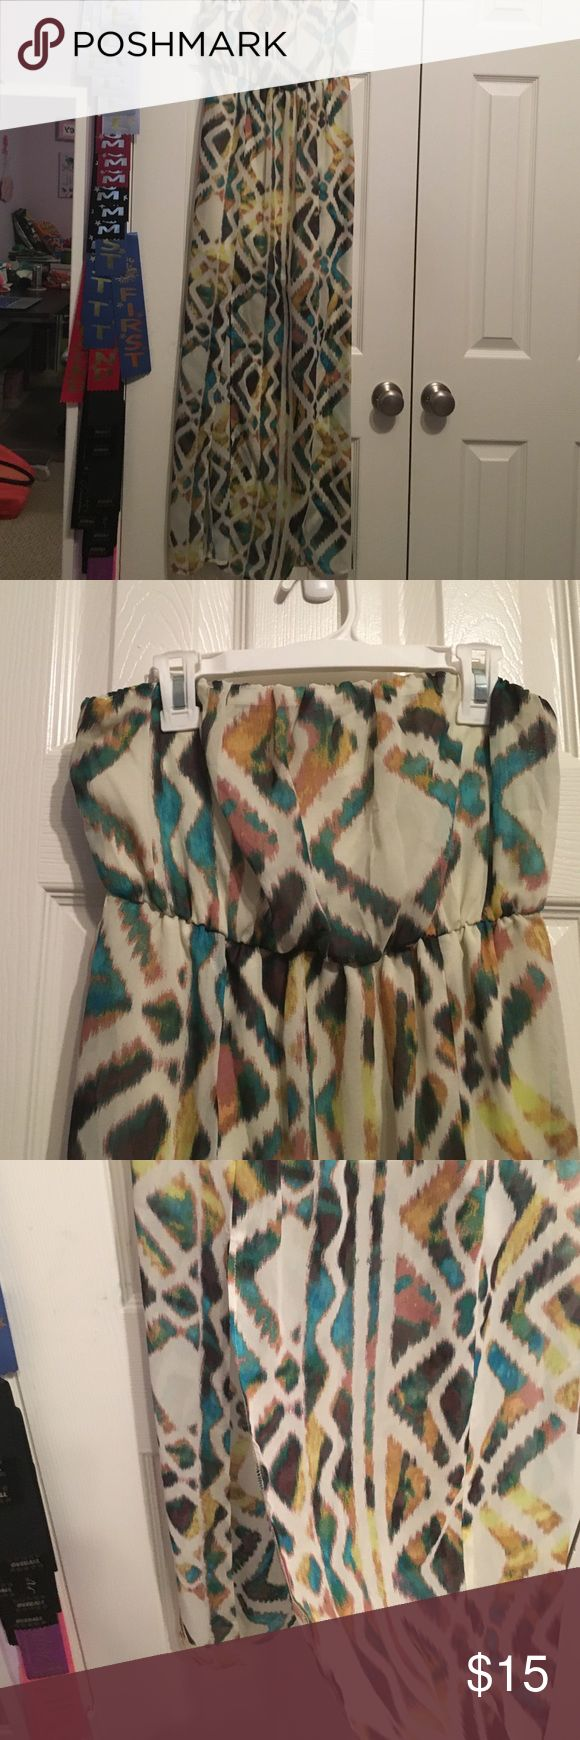 Strapless Aztec Maxi Dress Strapless Aztec Maxi dress with a slit on the right side. It is perfect for beach vacations!! It has been worn less than five times and has no damage or discoloration! Charlotte Russe Dresses Maxi